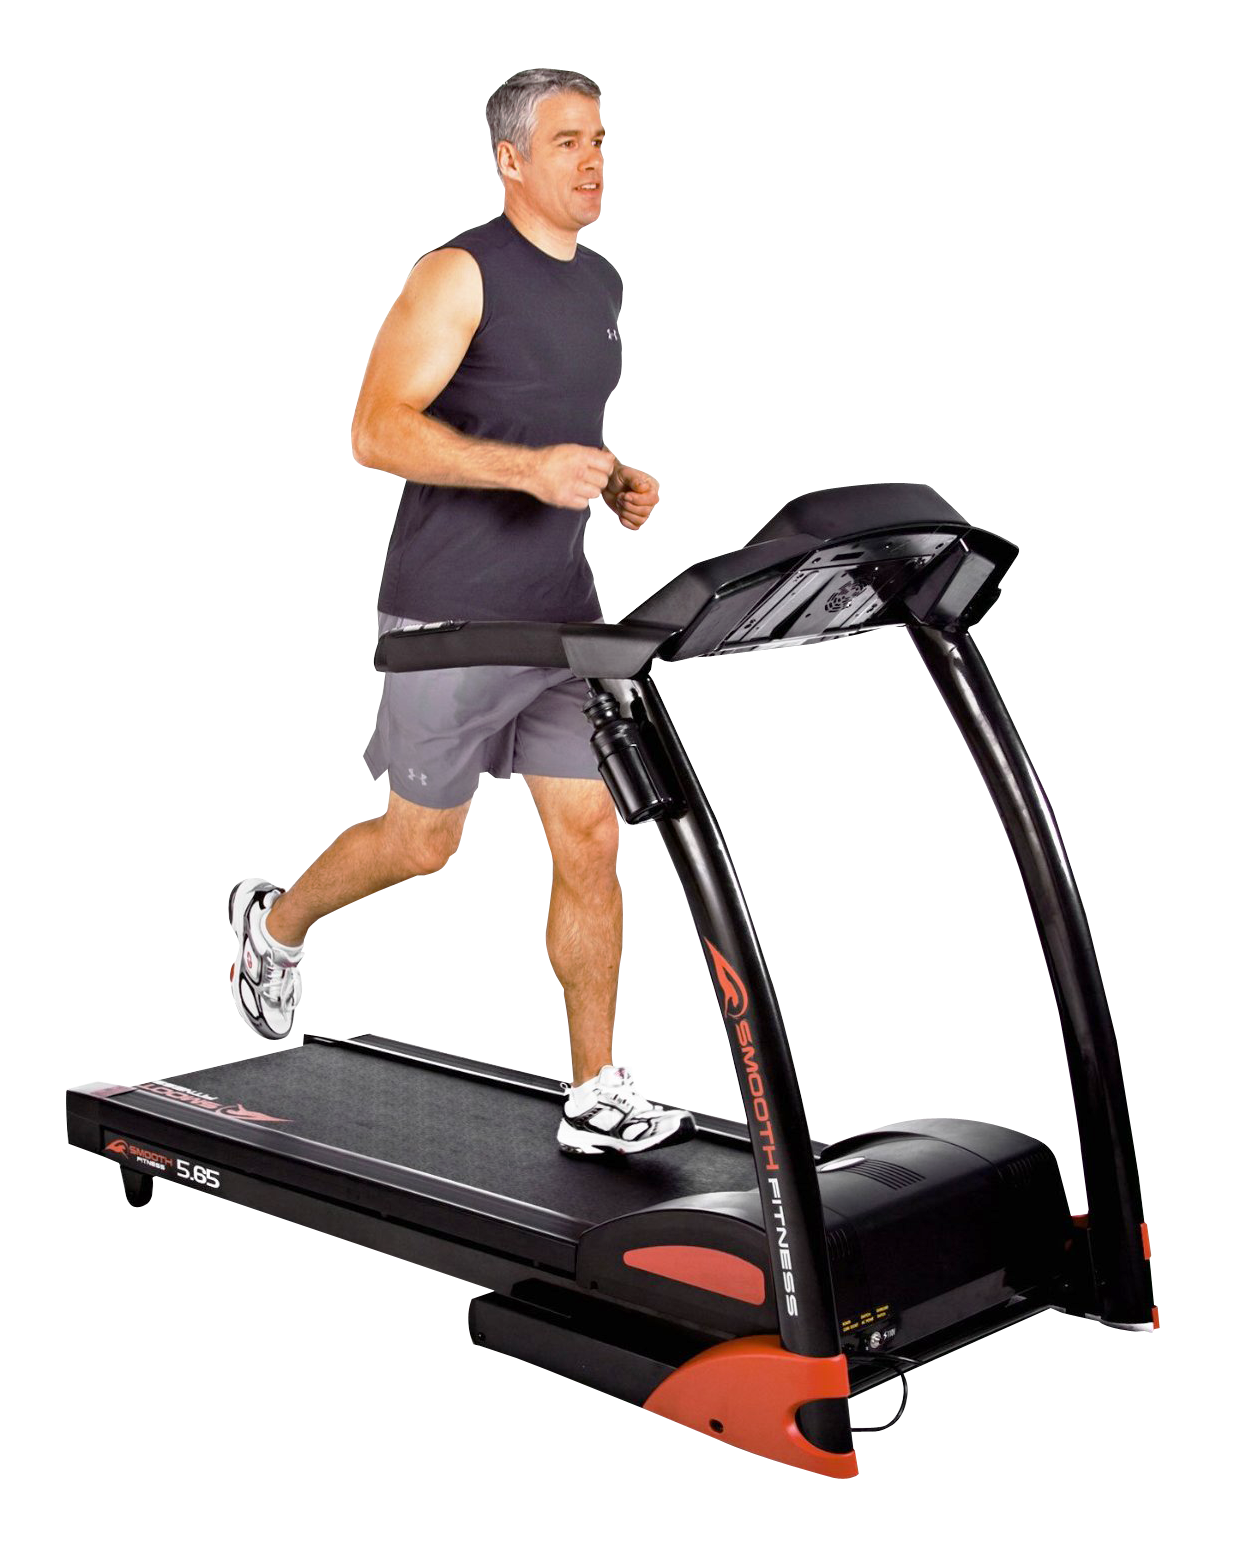 uploads gym equipment gym equipment PNG146 5